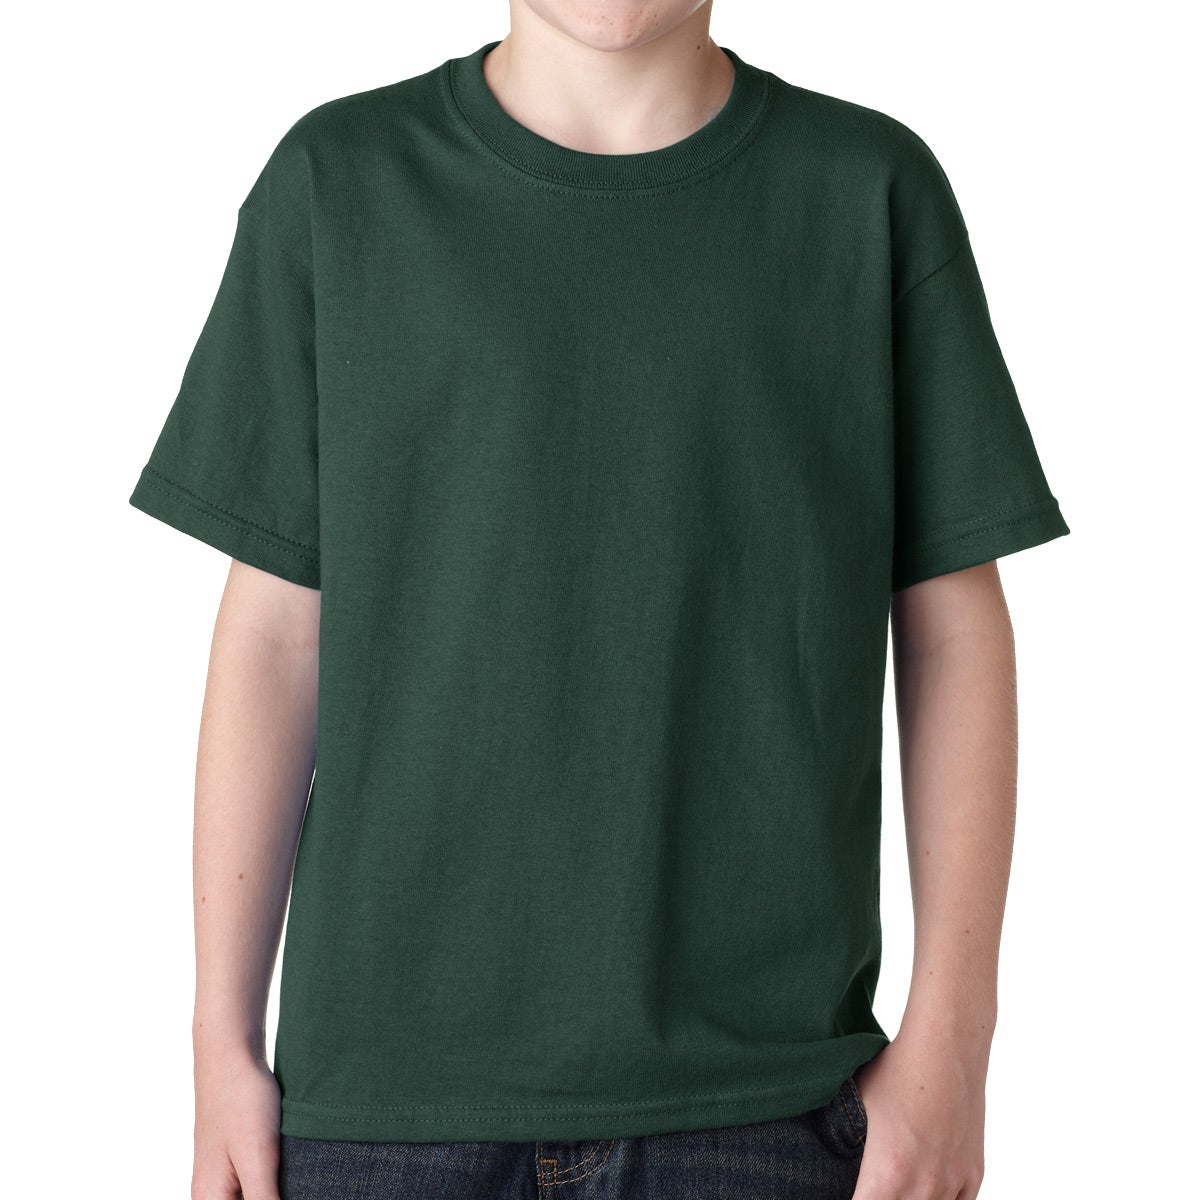 Gildan youth heavy cotton t shirt colors 100 cotton t for Custom cotton t shirts